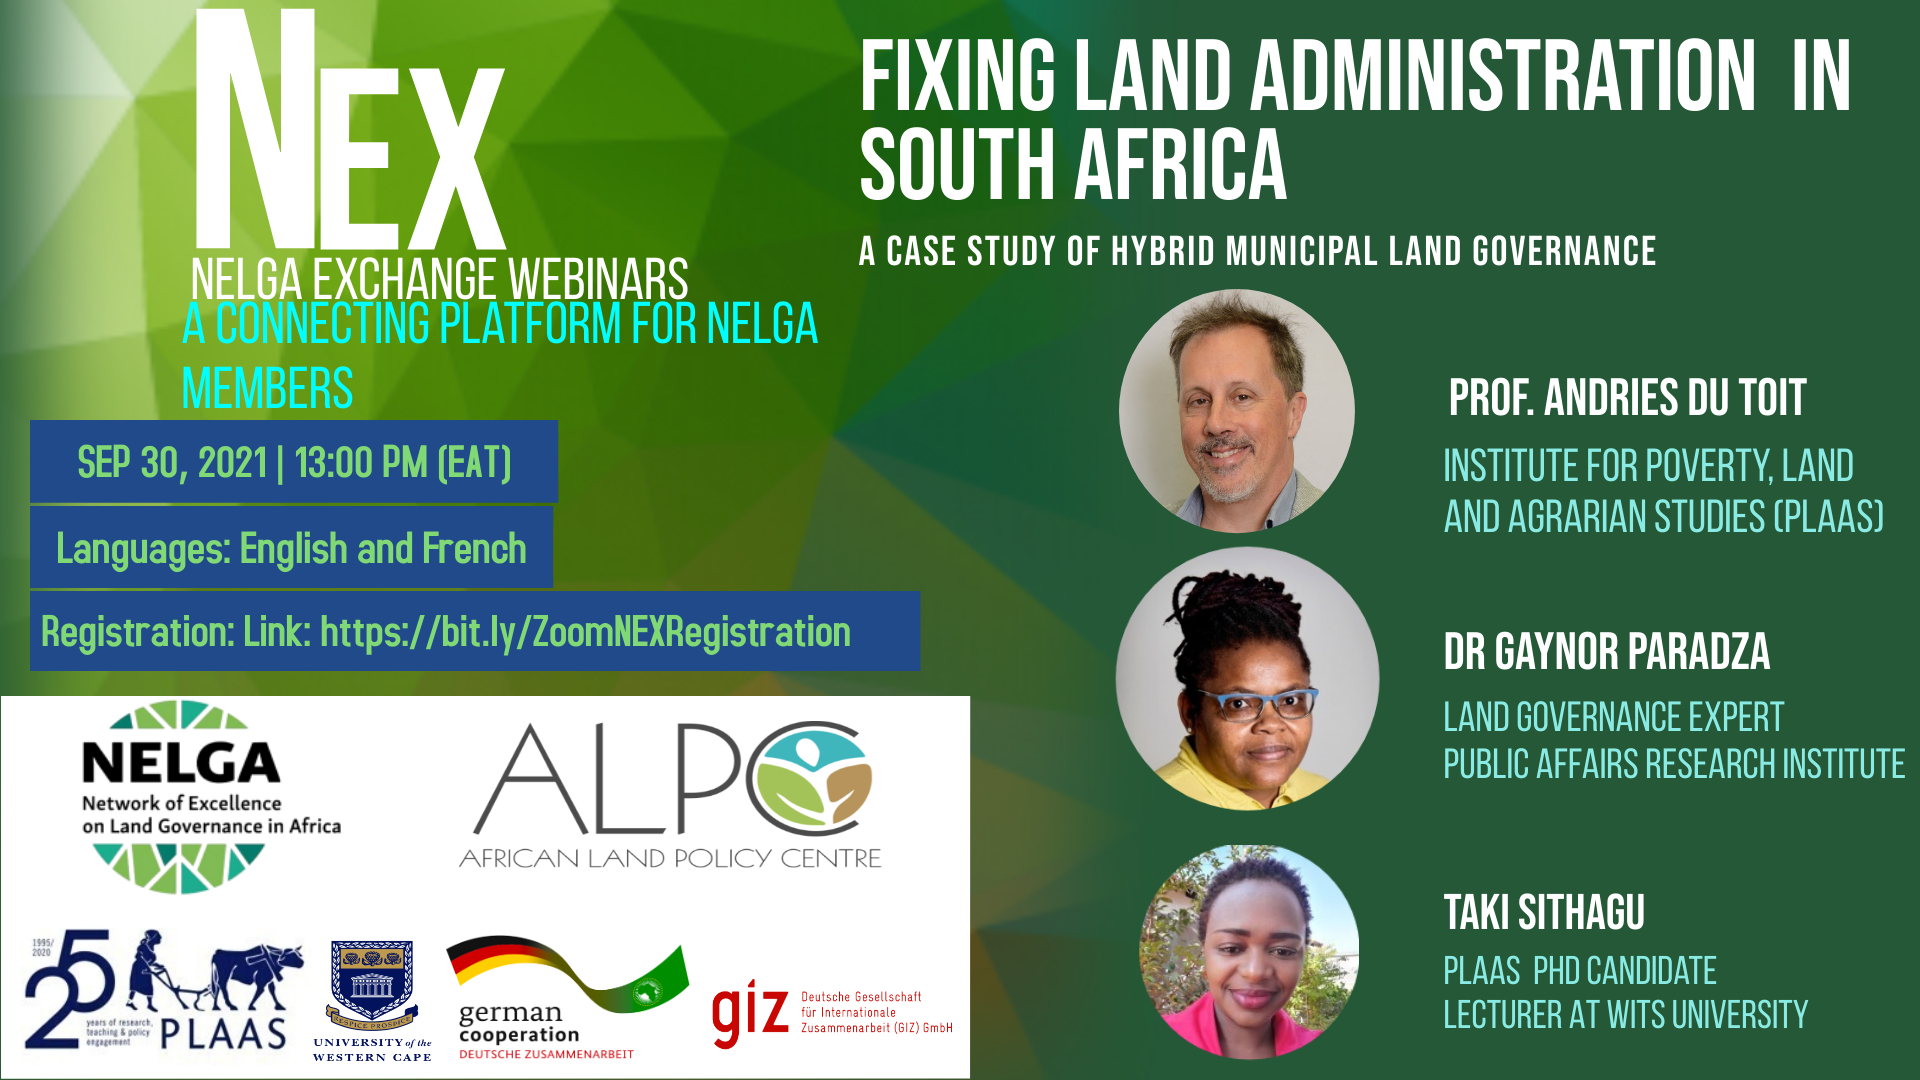 NELGA Knowledge Exchange on Land Governance in Africa   I   Focus- Southern Africa